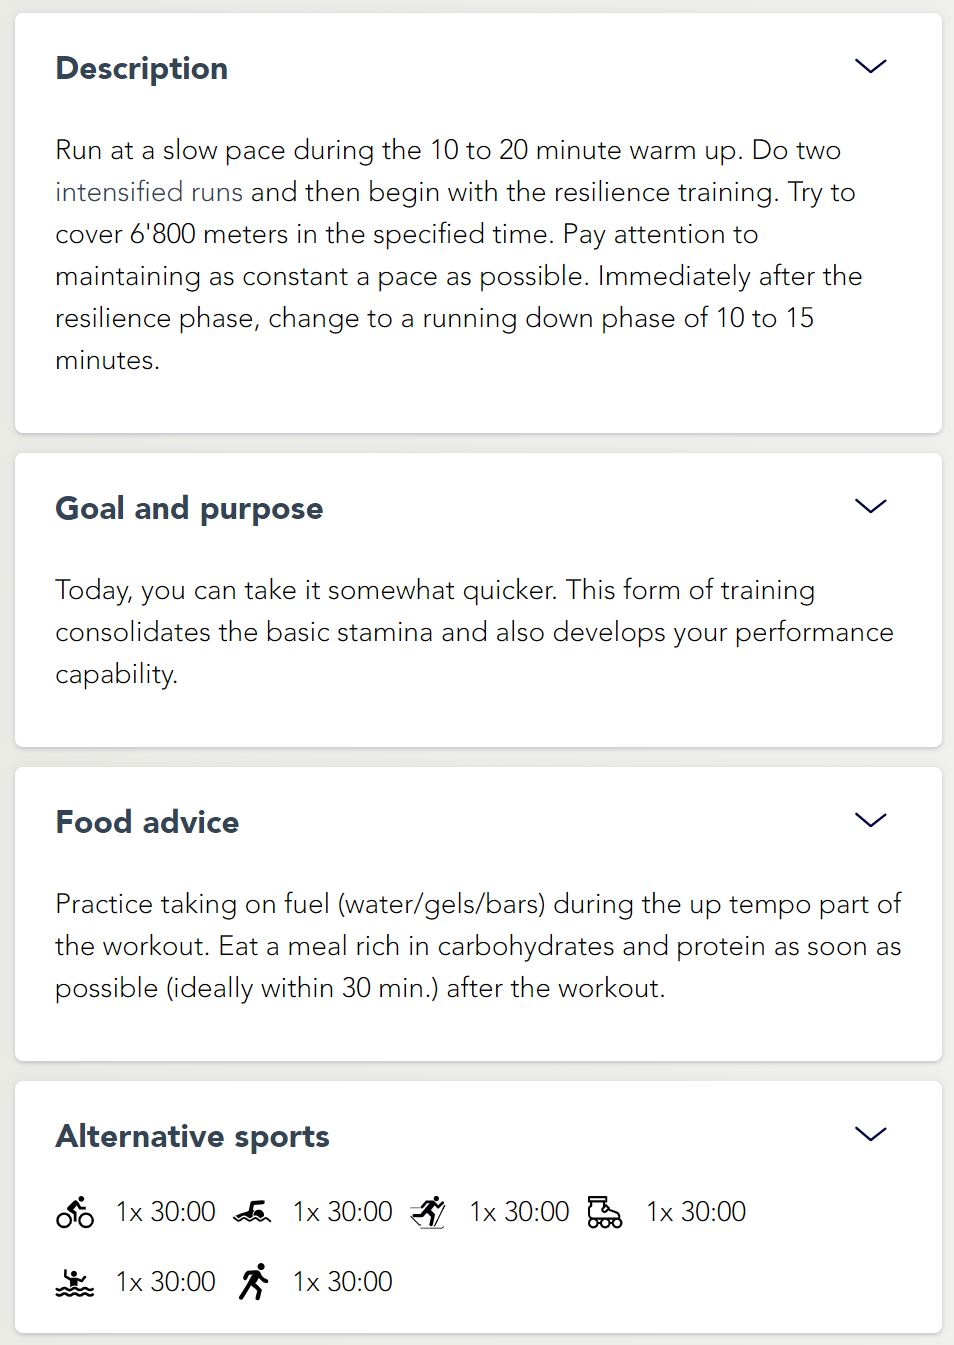 Description, goal and purpose